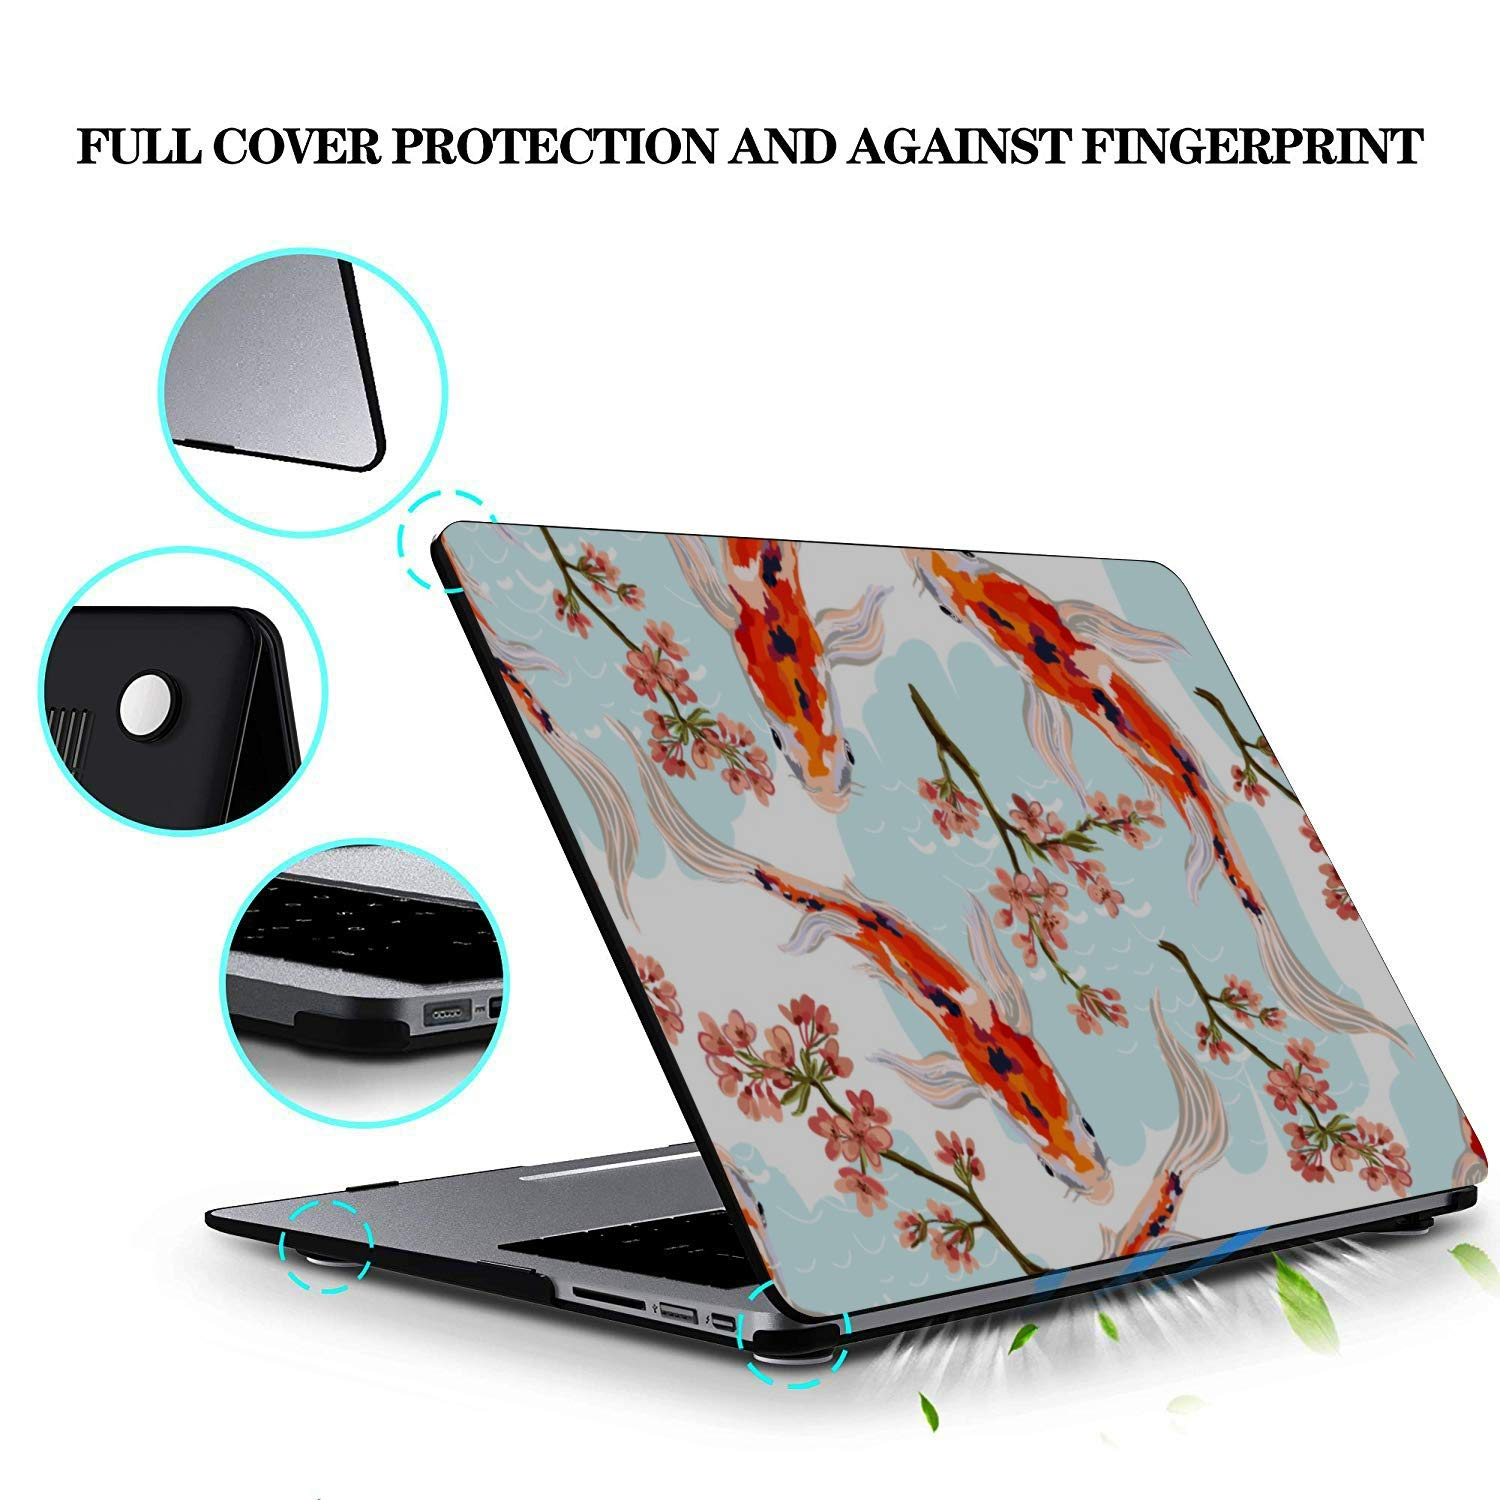 MacBook Air Laptop Case Sea Creatures Ornamental Fish Squid Plastic Hard Shell Compatible Mac Air 11 Pro 13 15 Laptop Cover Protection for MacBook 2016-2019 Version